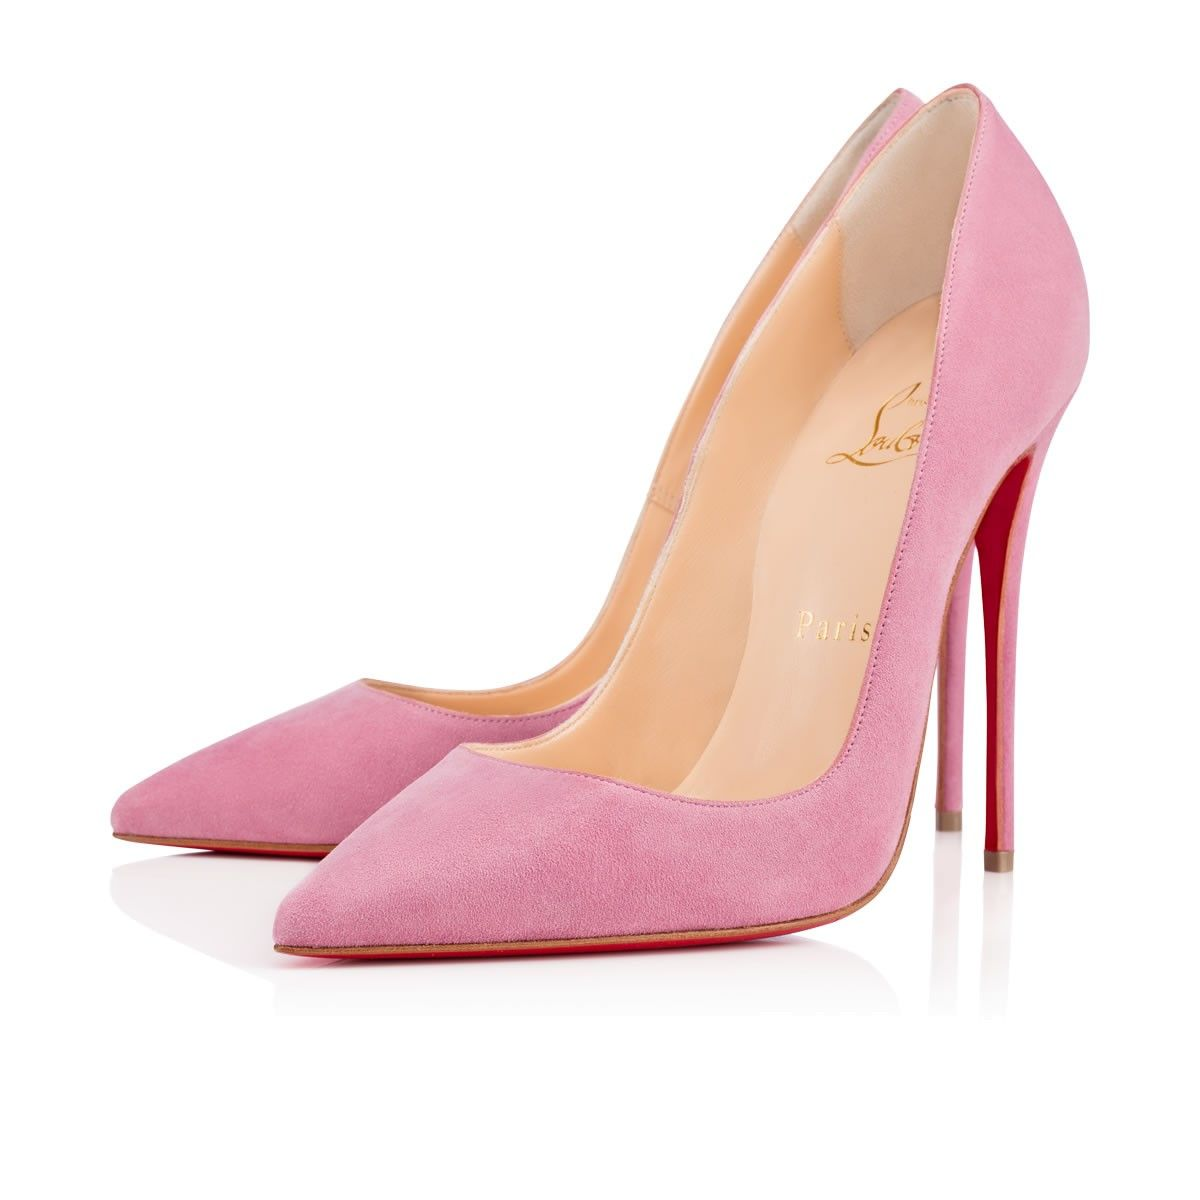 christian louboutin shoes pink